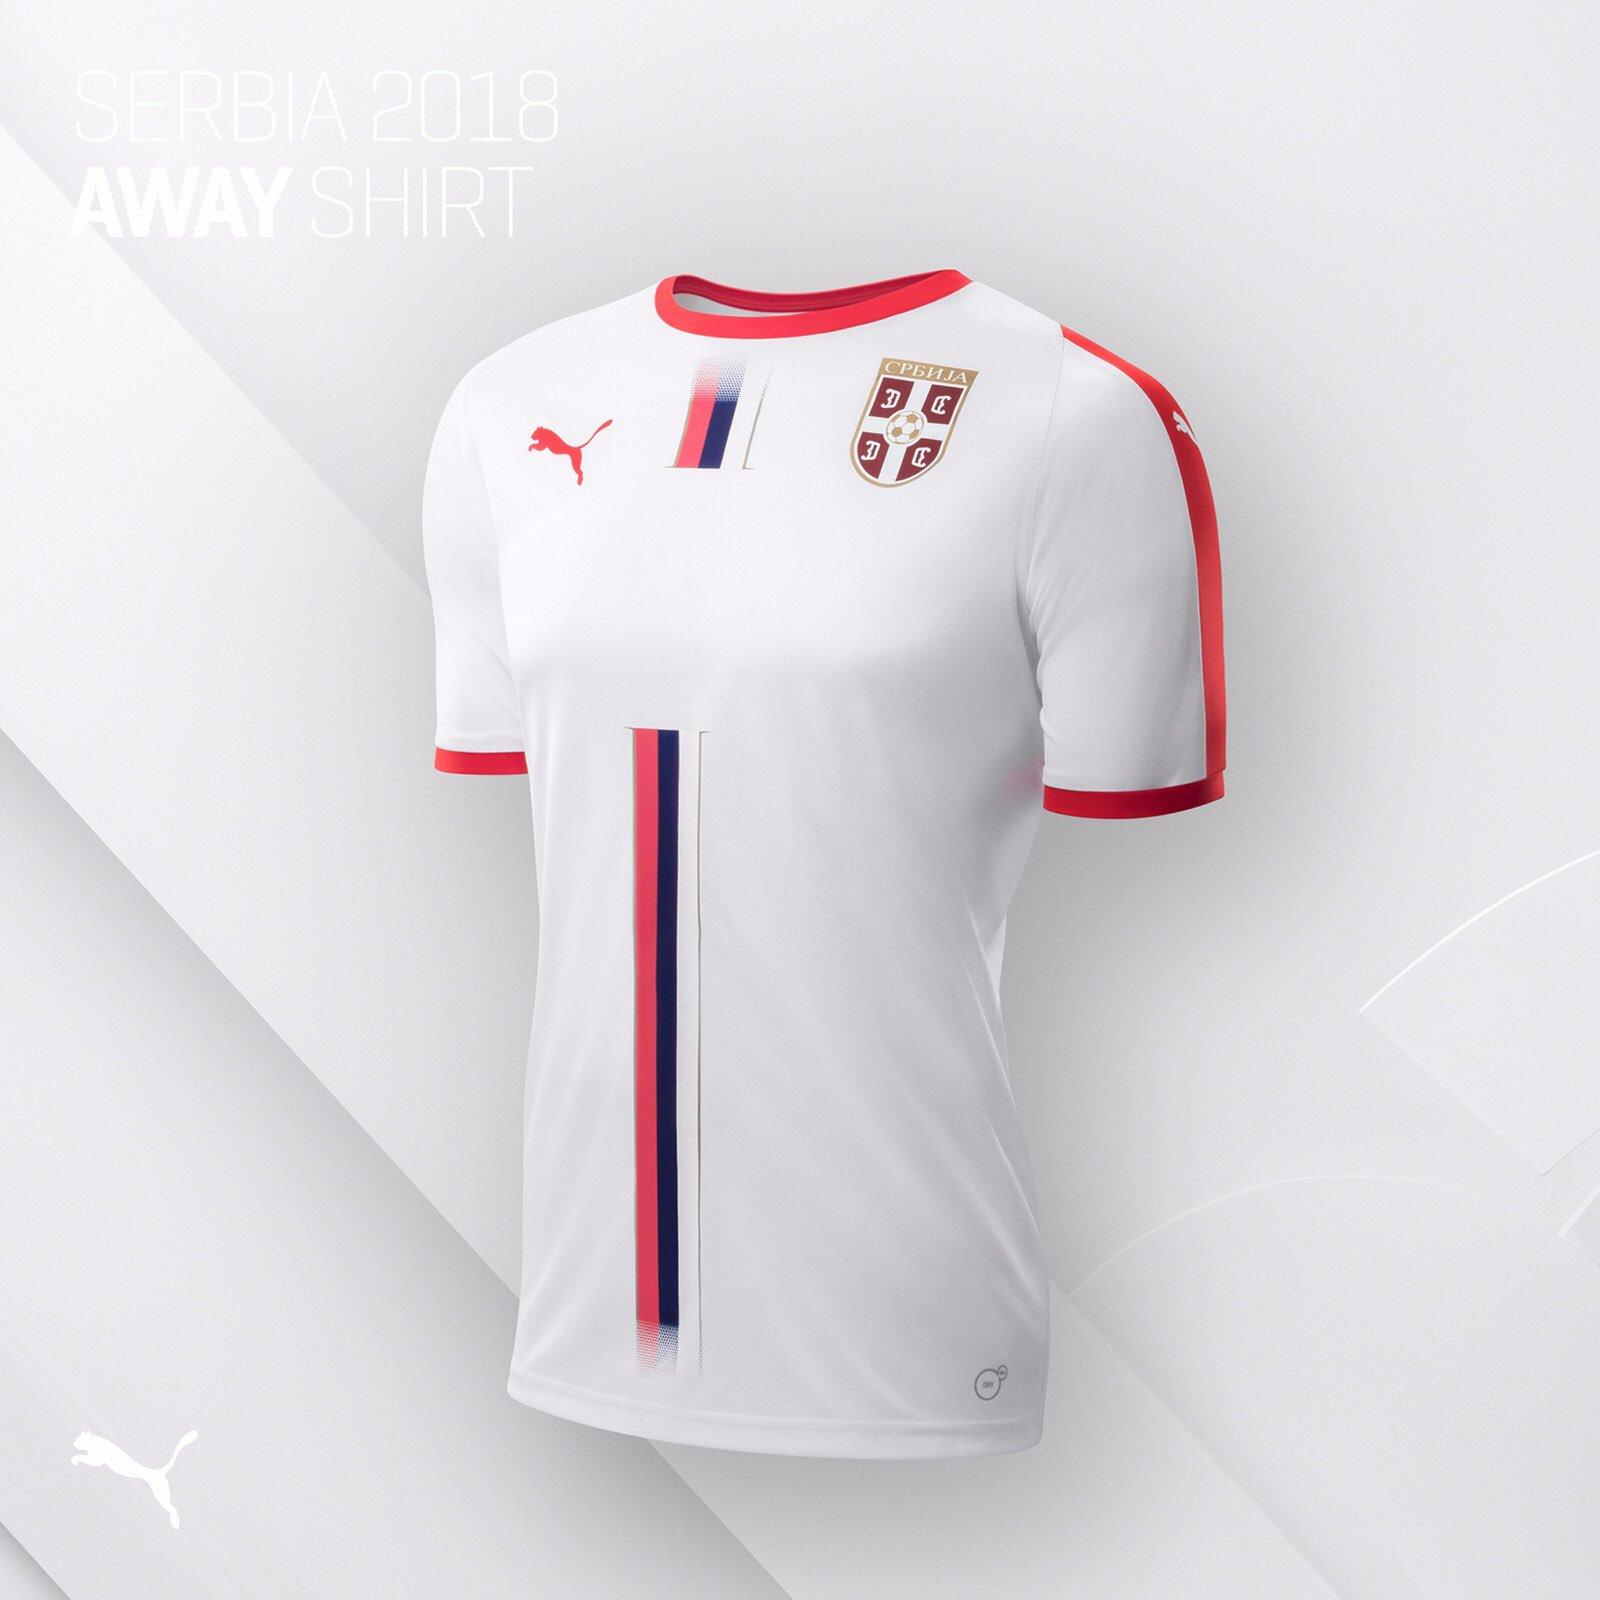 serbia-2018-world-cup-away-kit-2.jpg